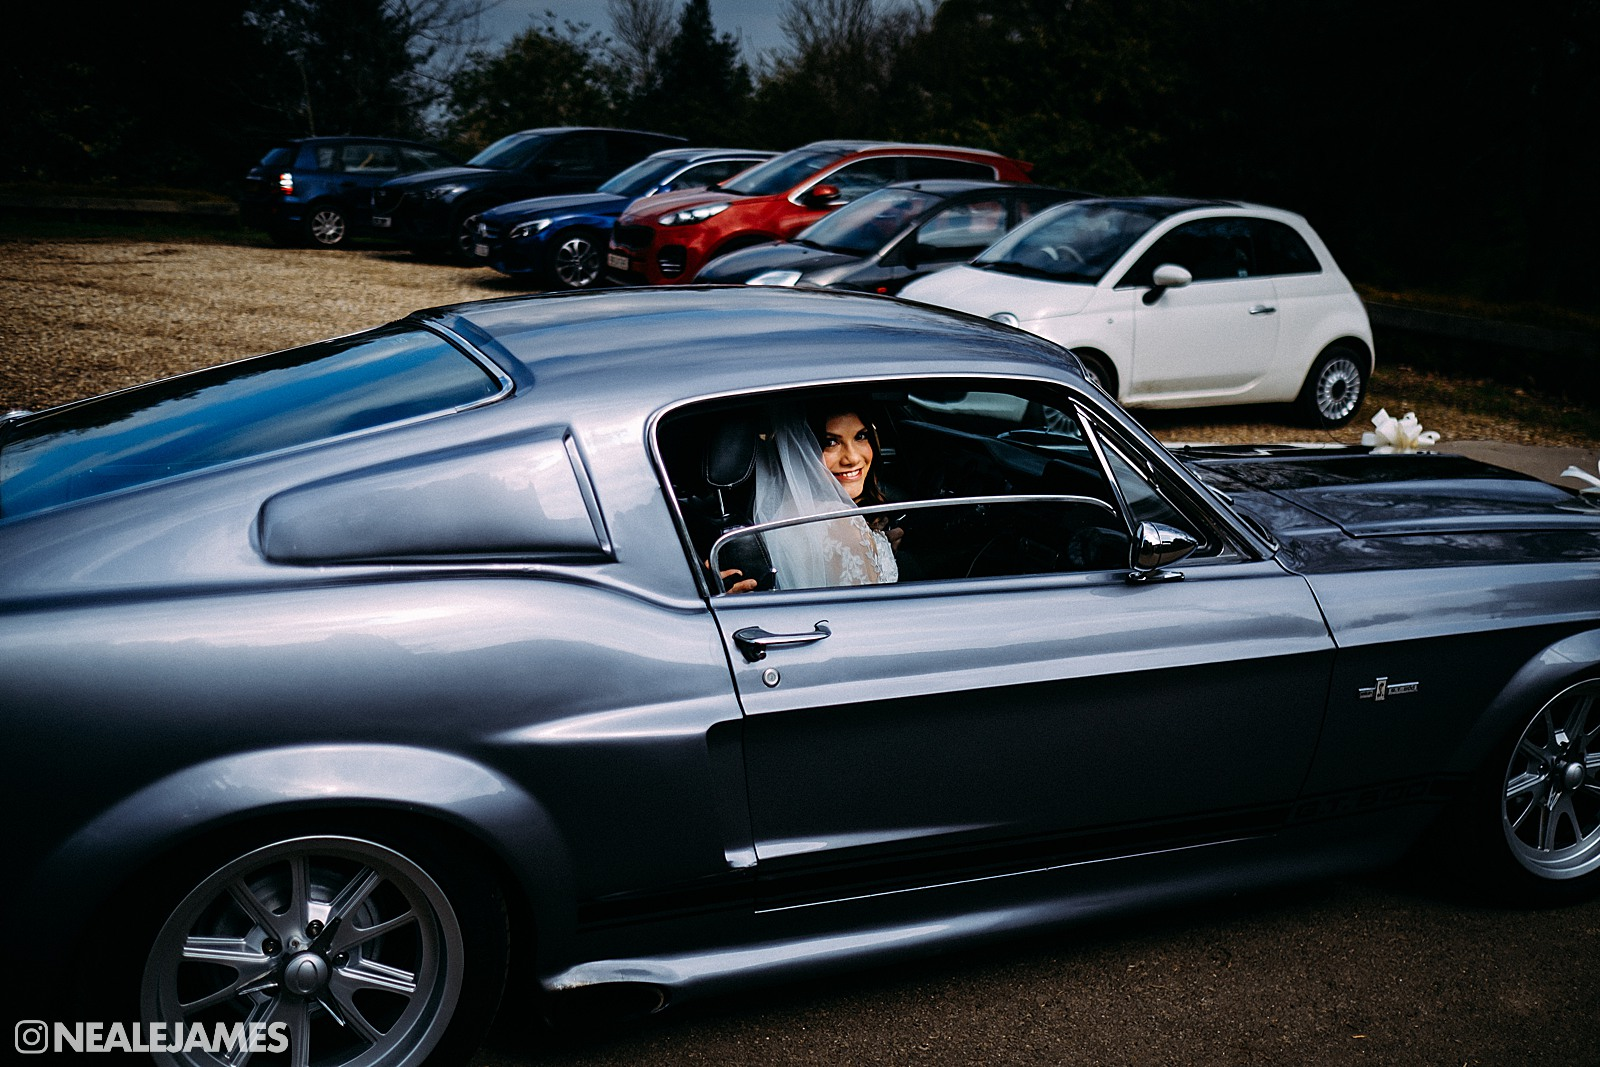 Colour photo of a bride arriving by Mustang car